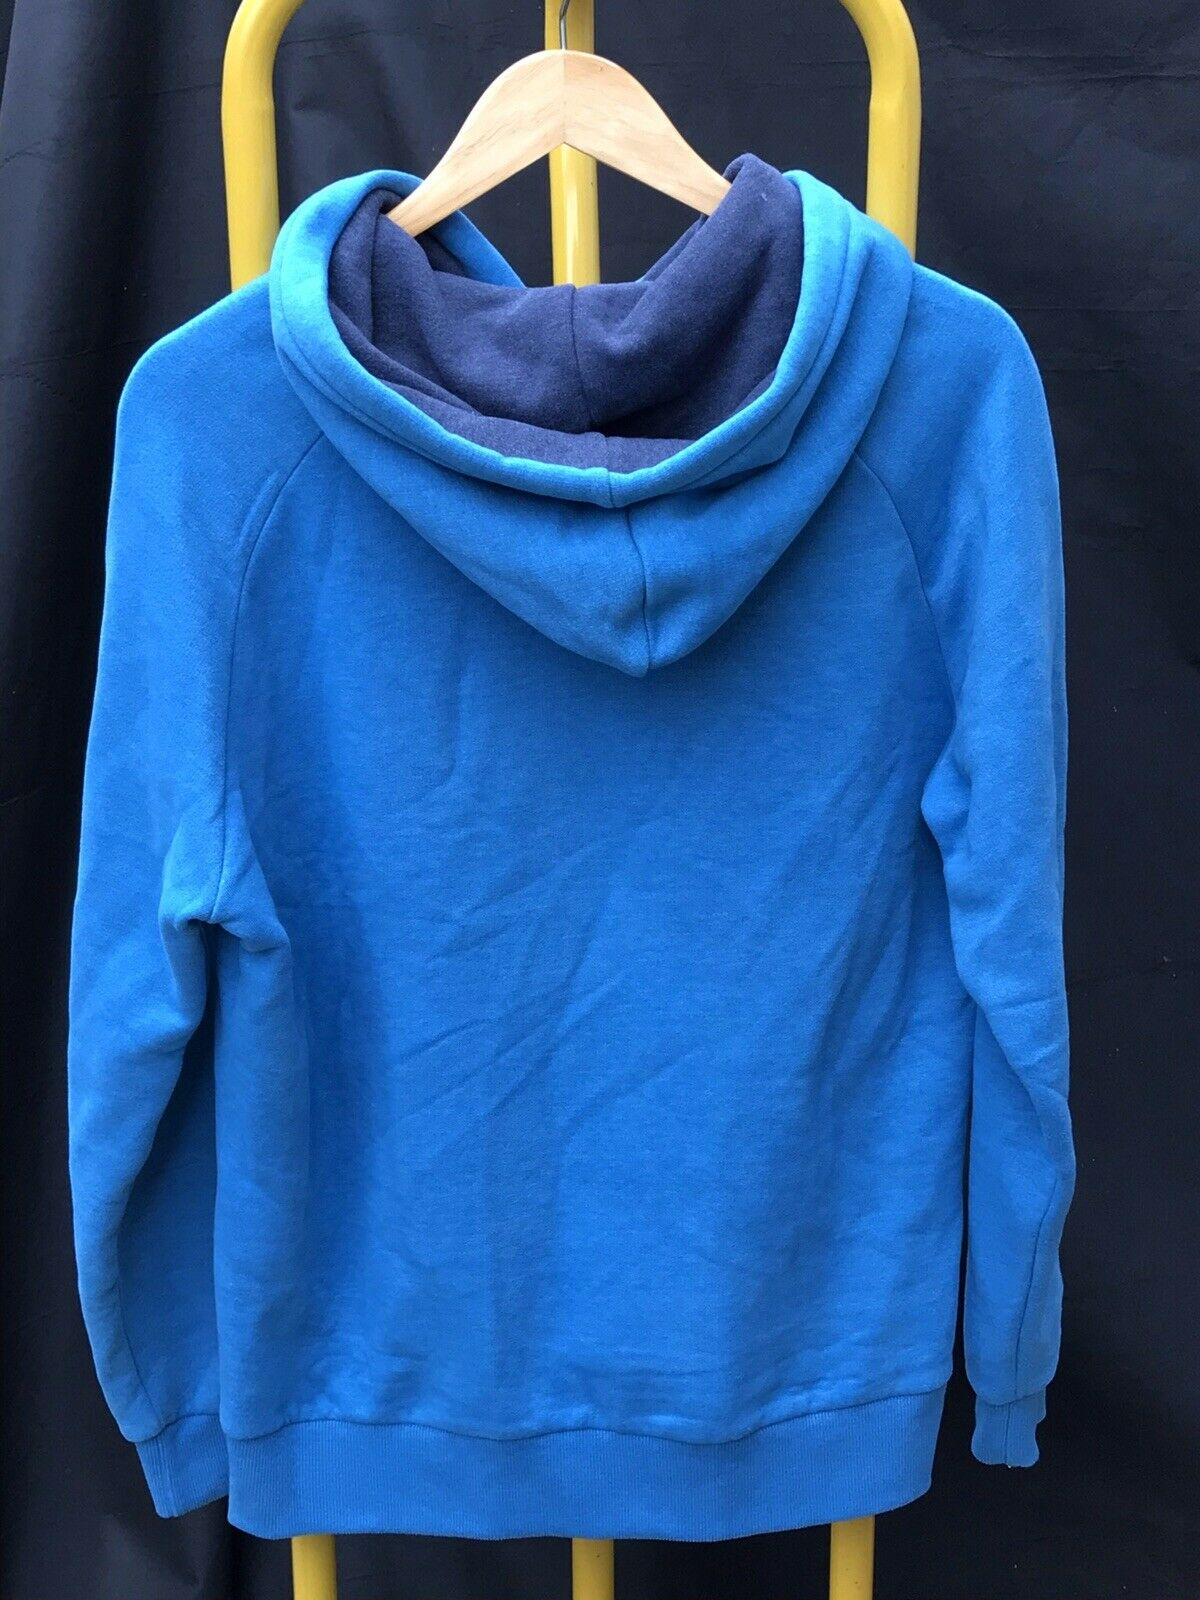 weird fish Hoody / Jumper size 14, Very Good Condition